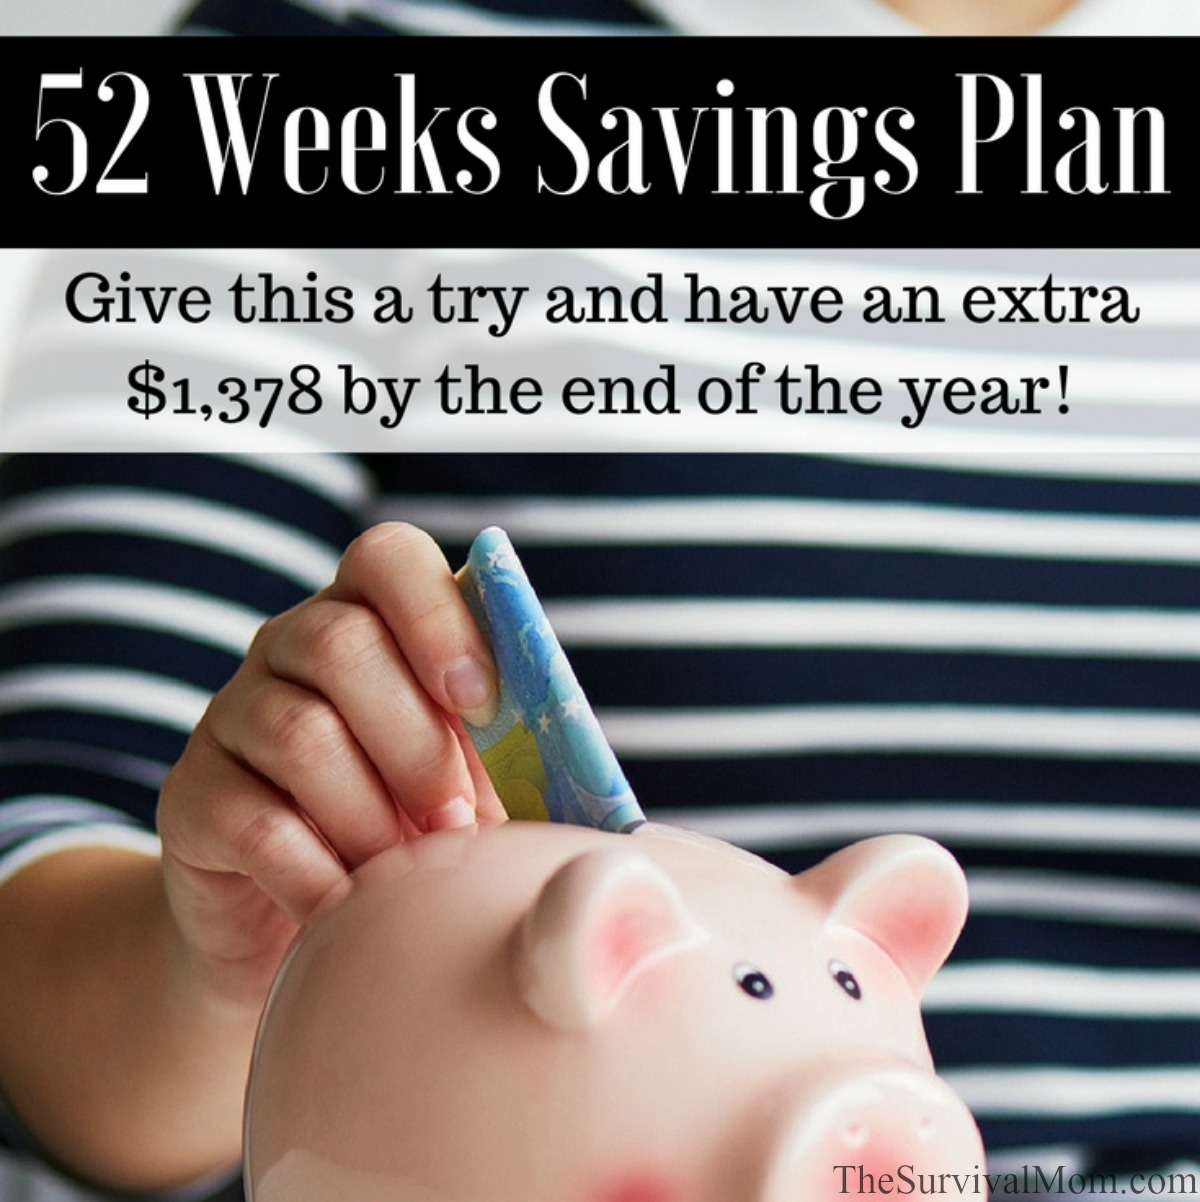 52 Weeks Savings Plan: Give this a try and have an extra